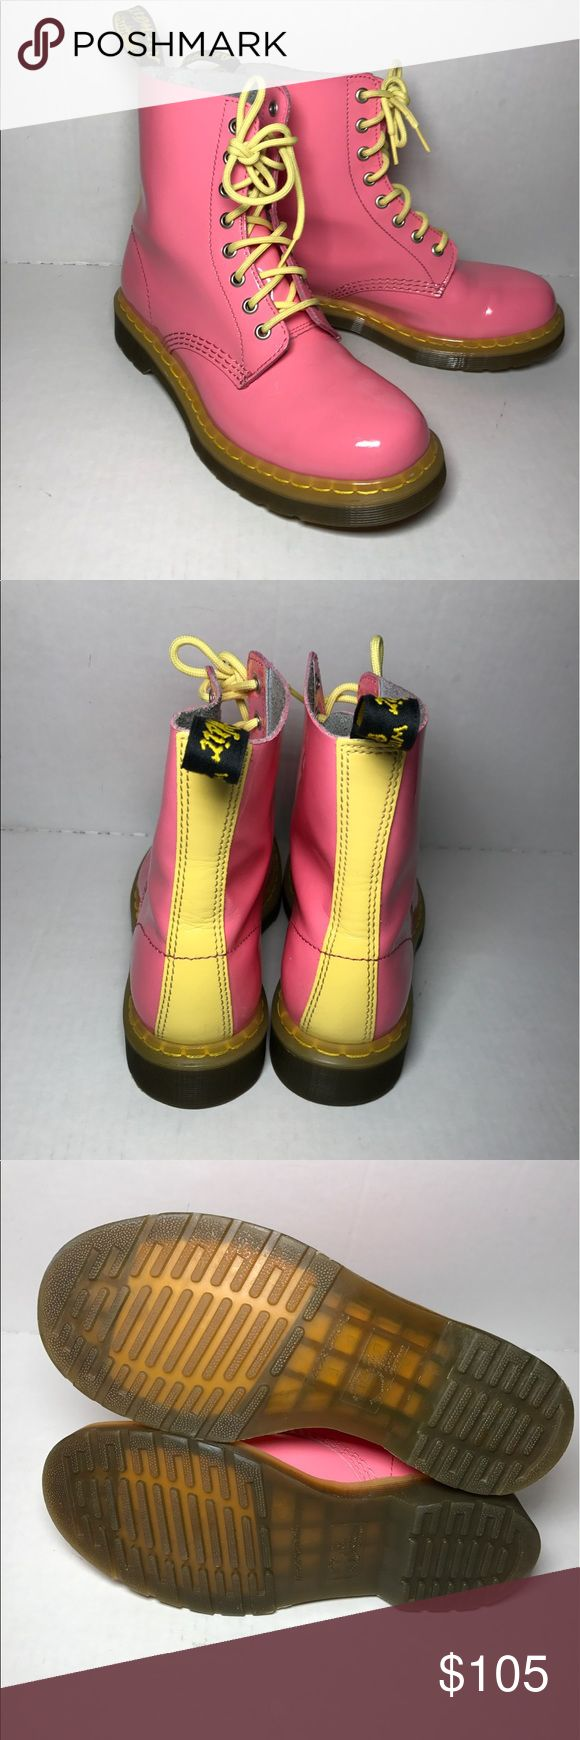 17 best ideas about Yellow Ankle Boots on Pinterest | Orange ankle ...